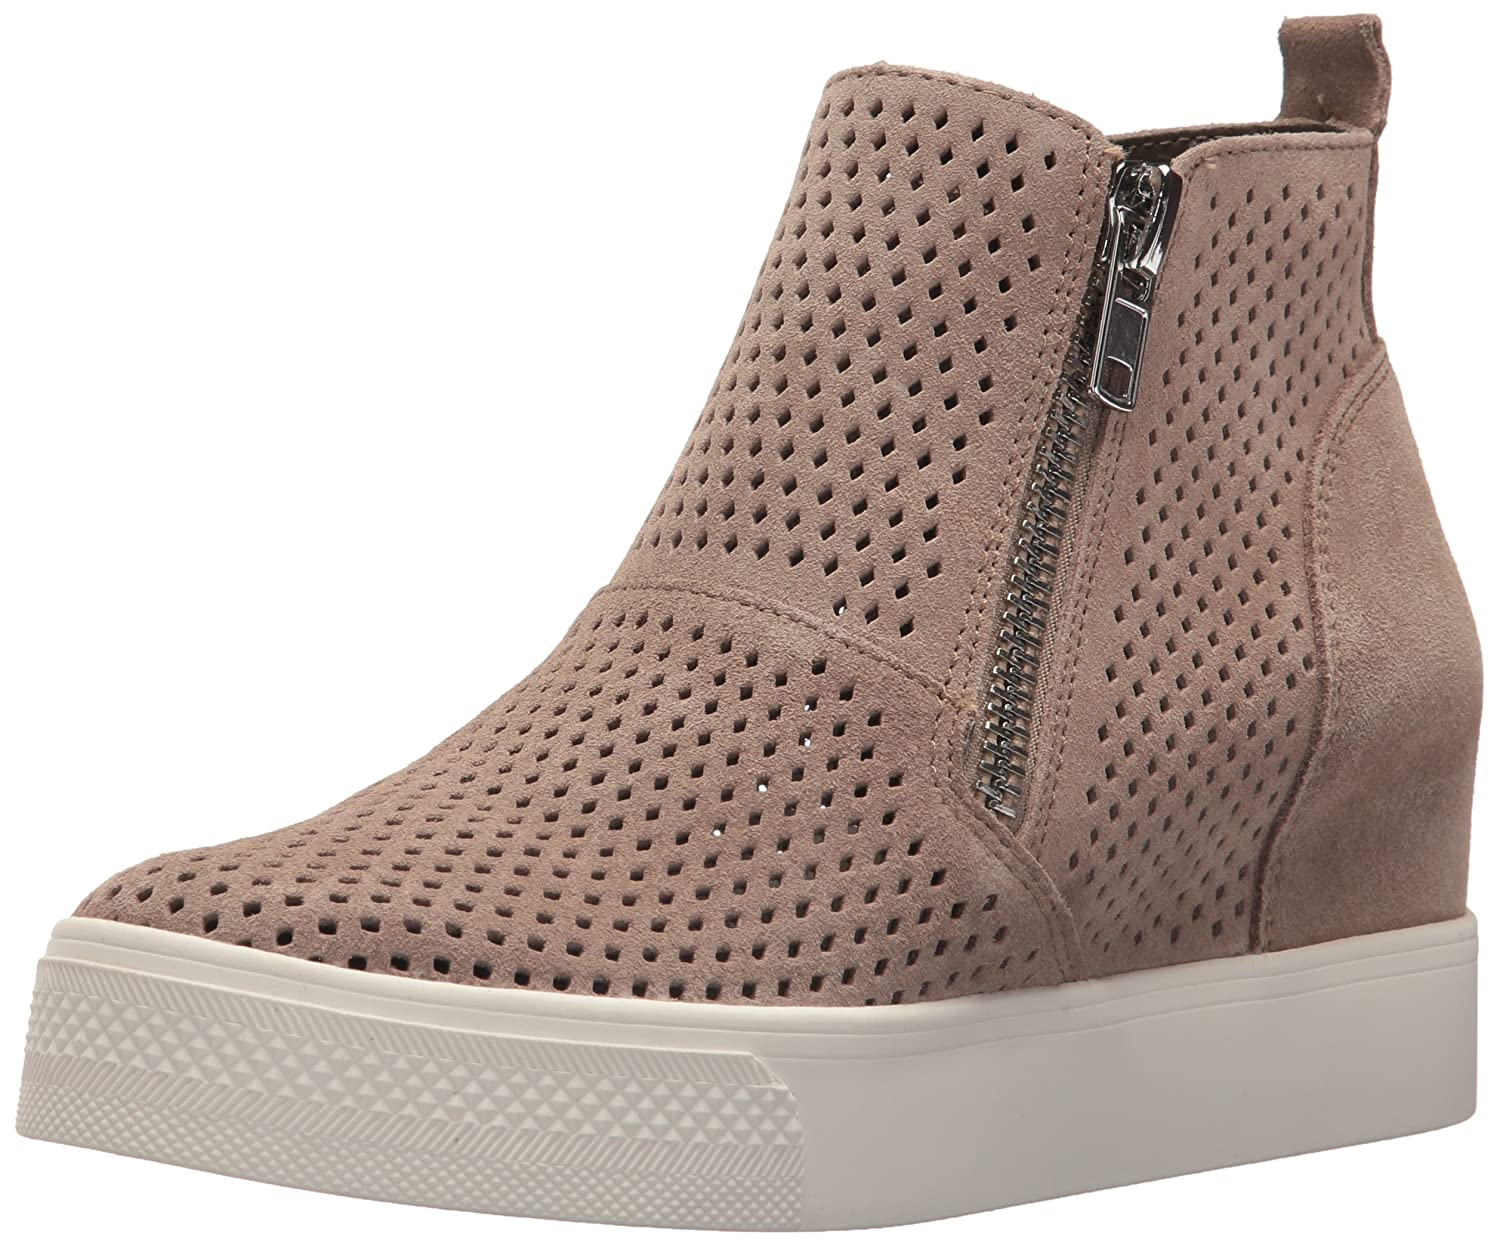 Steve Madden Women's Wedgie-P Sneaker B077H1PNVY 10 B(M) US|Taupe Suede